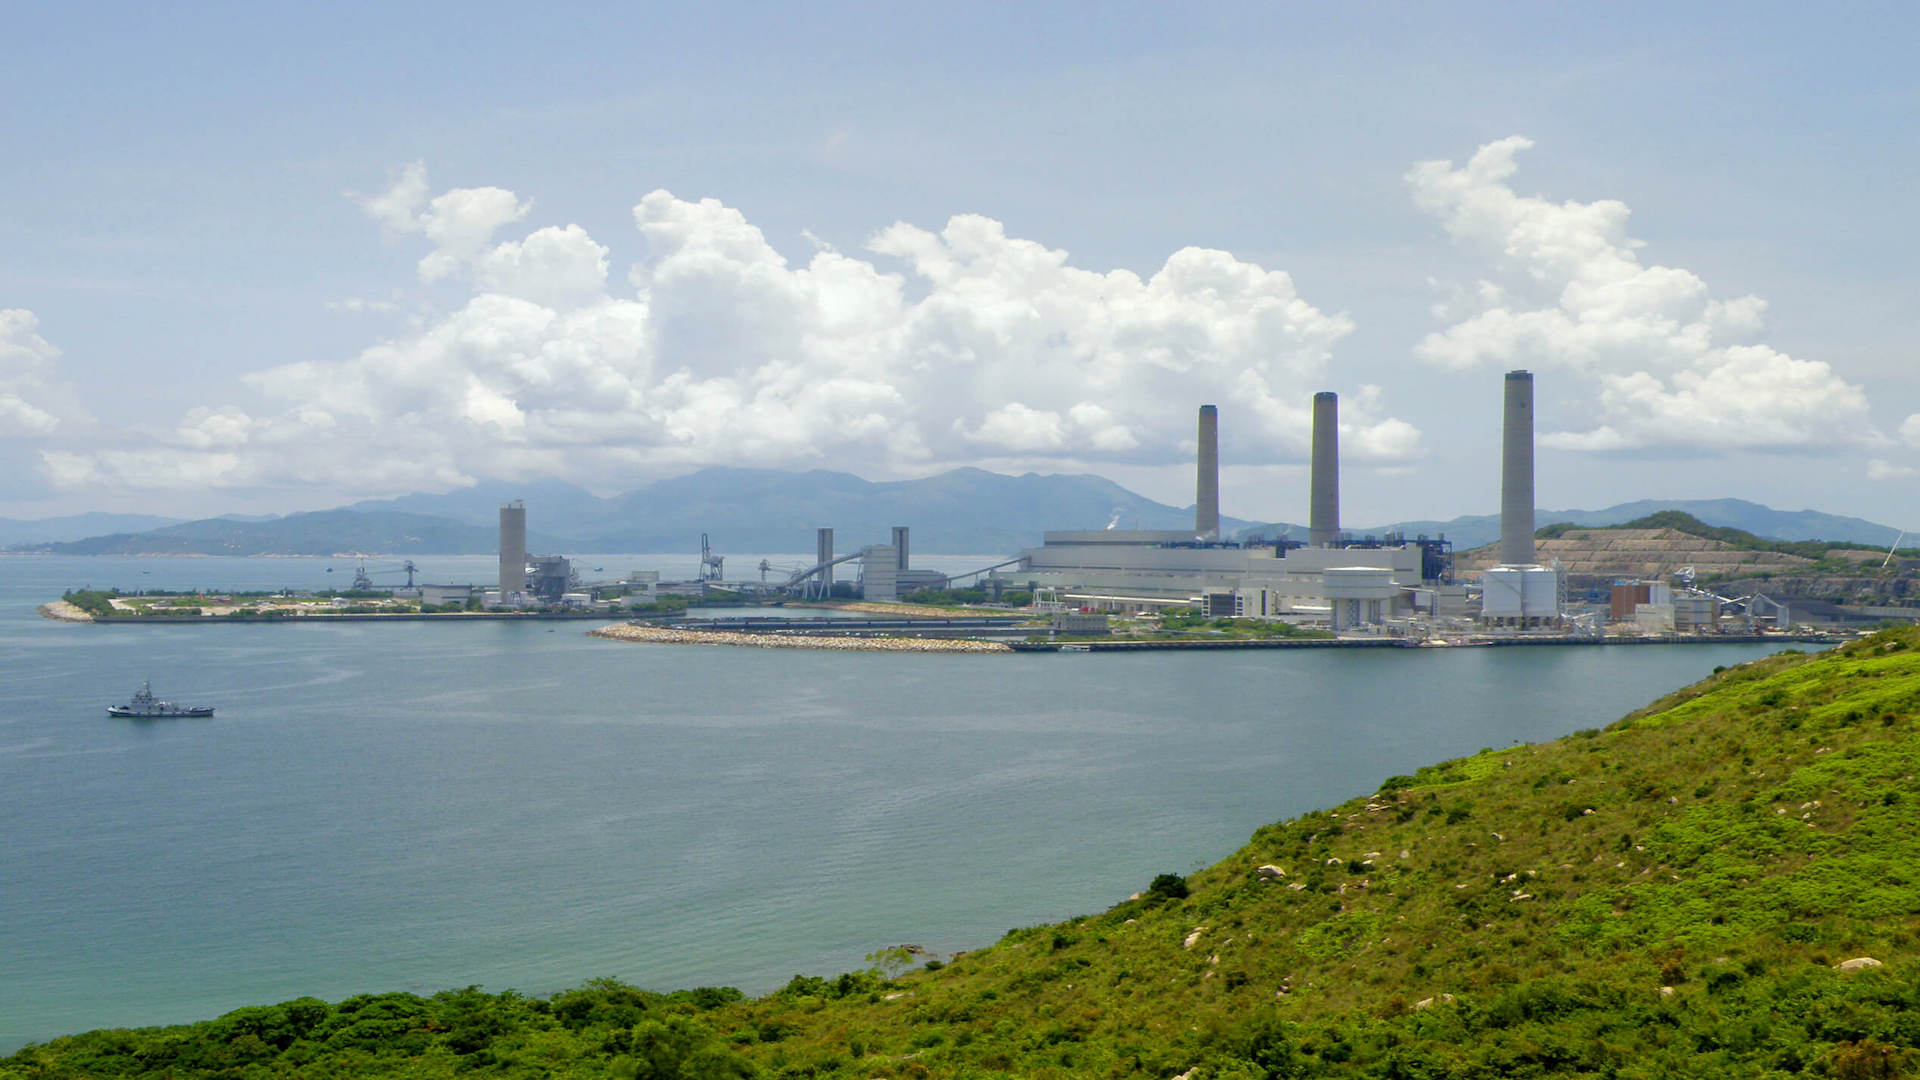 Power station on island